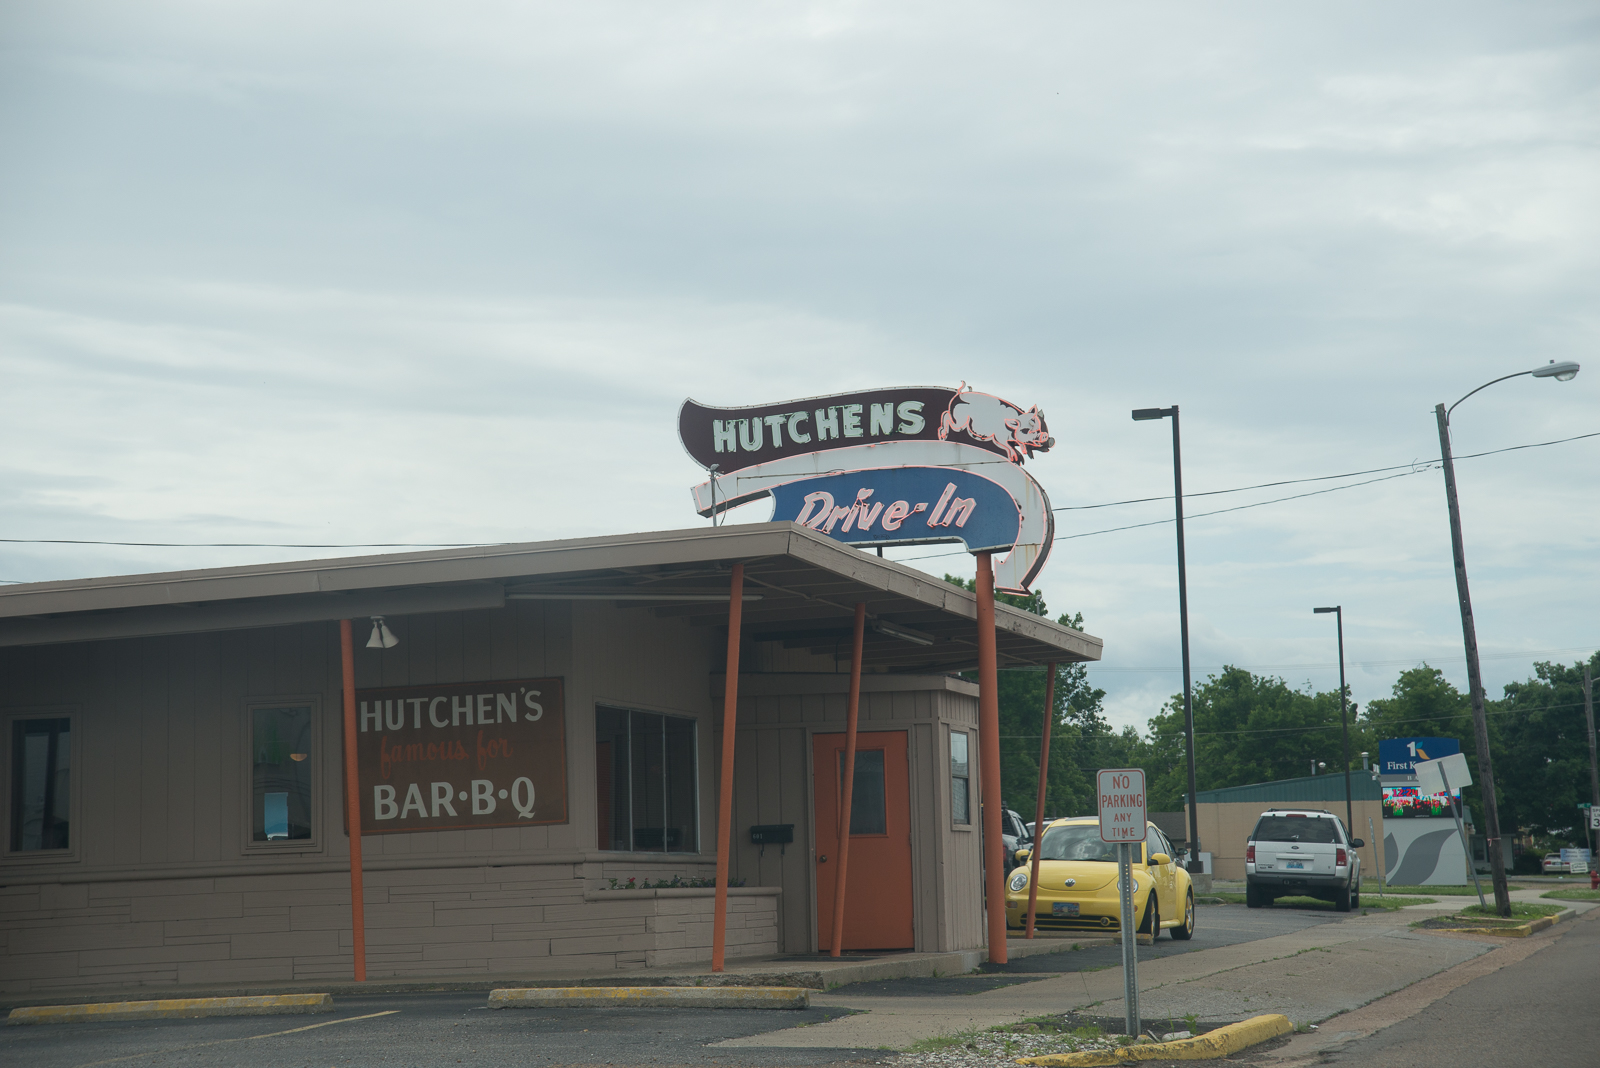 Hutchen's Drive In is DEEEELICIOUS! The bbq comes with the sauce on the side, the way it should be... Benton KY.